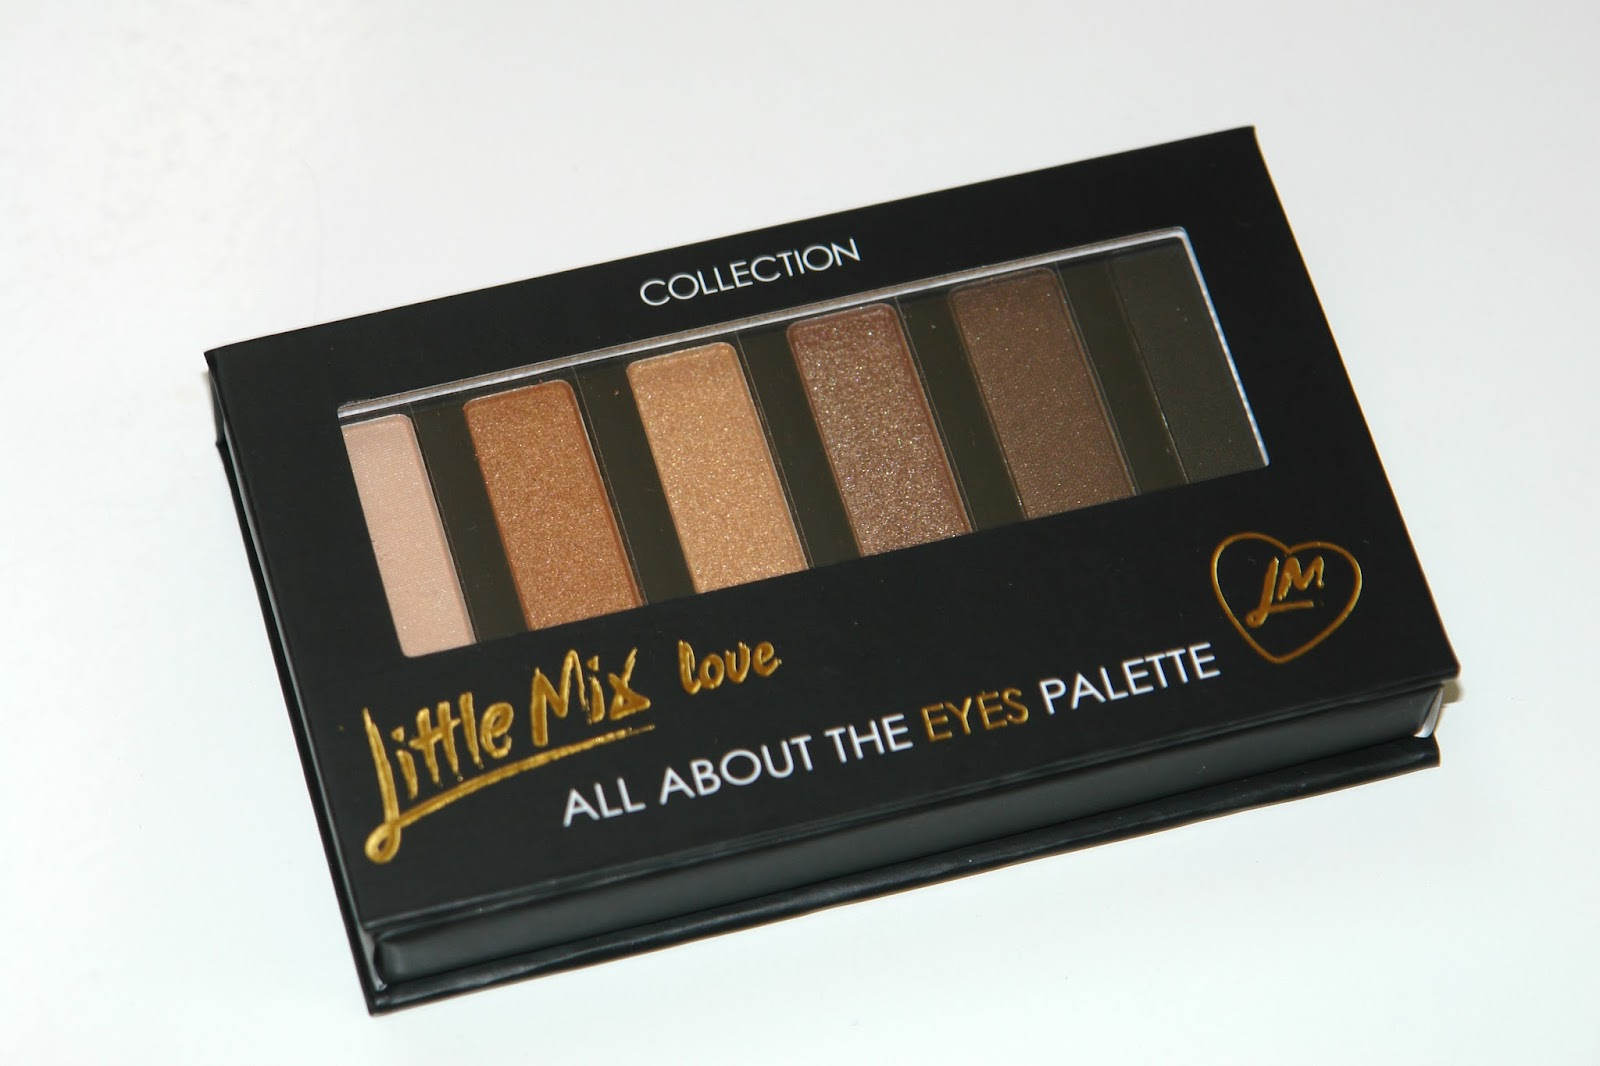 COLLECTION Little Mix Eye Palette review, Collection, palette, eye shadows, make up, review, swatches, UK blog, blogger, beauty blog, bbloggers, All About The Eyes Palette, Little Mix,  lip balms in Natural Shimmer (Perrie), Vanilla  (Jesy), Mint (Leigh-Ann) and Raspberry (Jade)